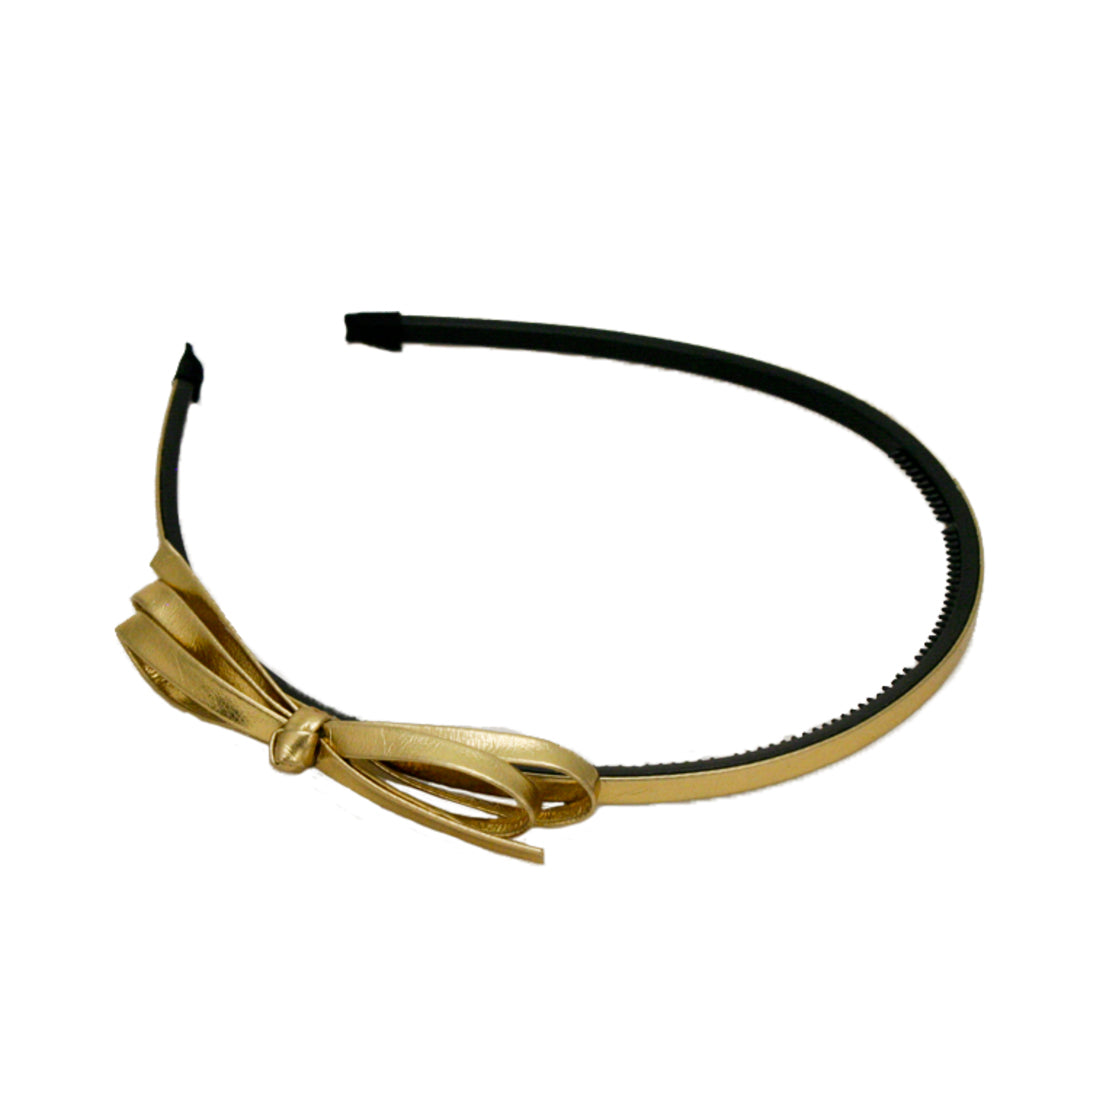 Mia® Leather Bow Headband - gold - #MiaKaminski #Mia #MiaBeauty #Beauty #Hair #HairAccessories #headbands #headwraps #lovethis #love #life #woman #headbandwithbow